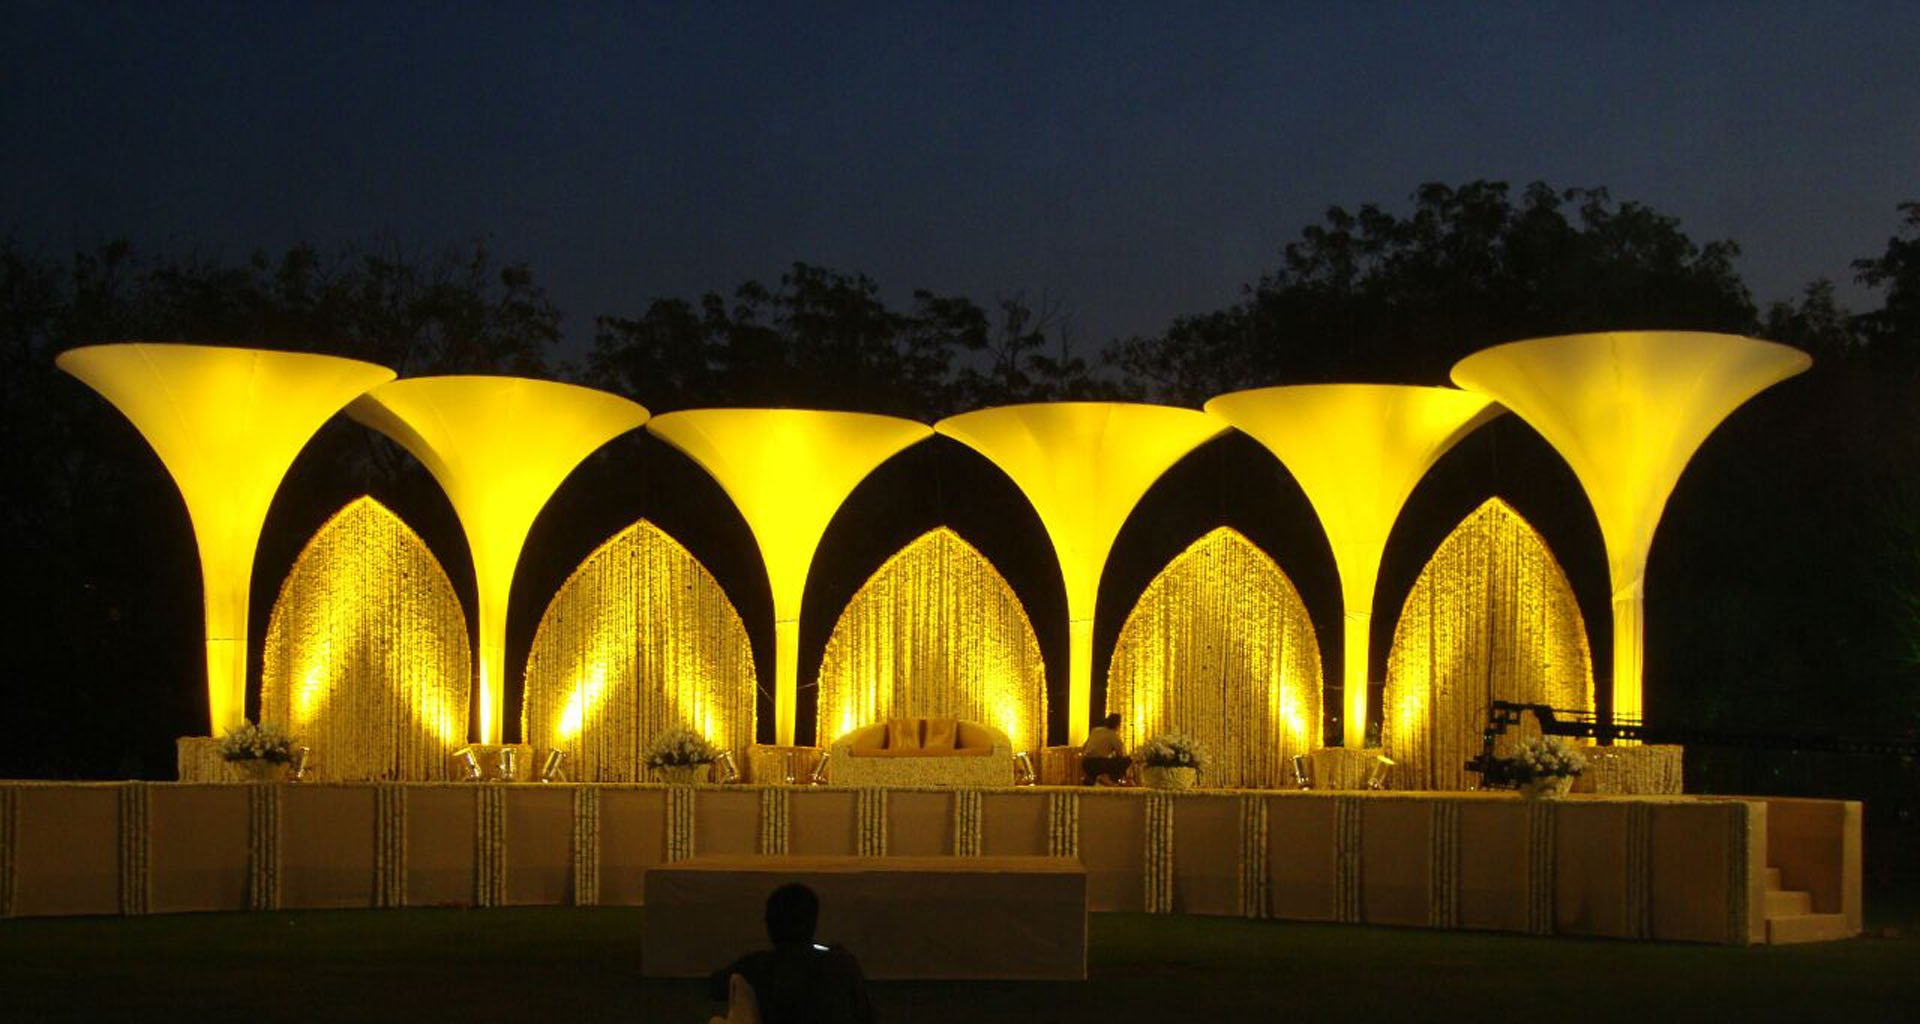 wedding planner in kota, Event Organizers in Ajmer, Event Management Companies in Jaipur